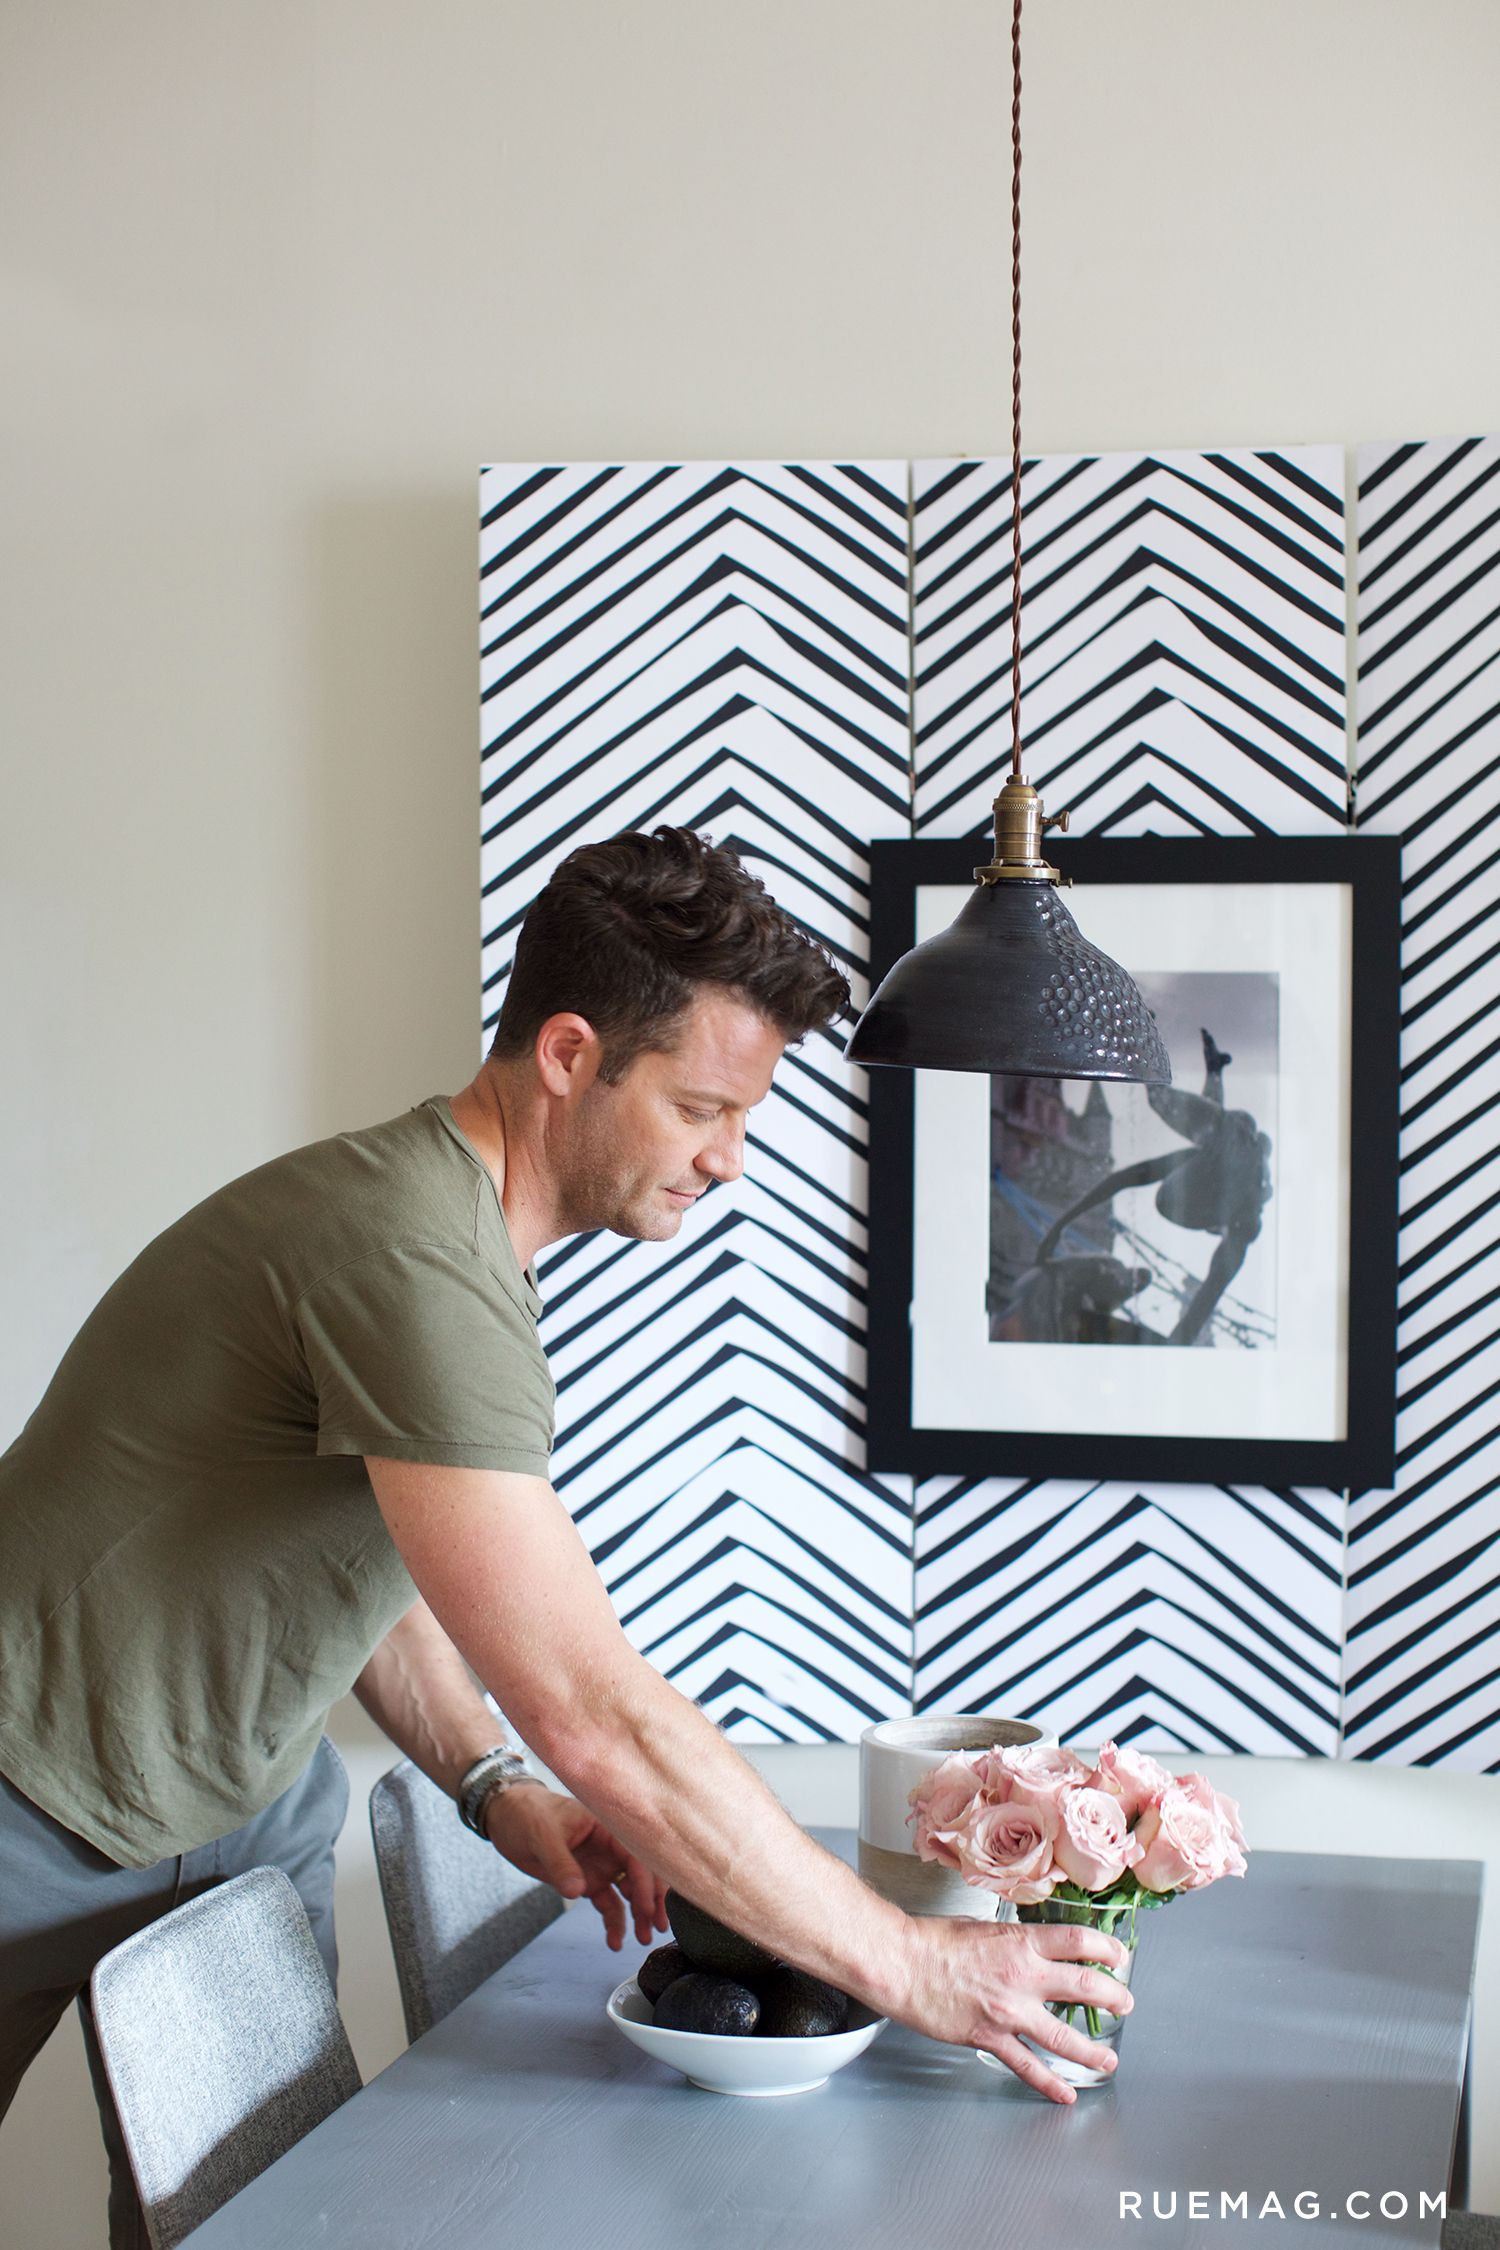 5 things we learned from this small space makeover by nate berkus